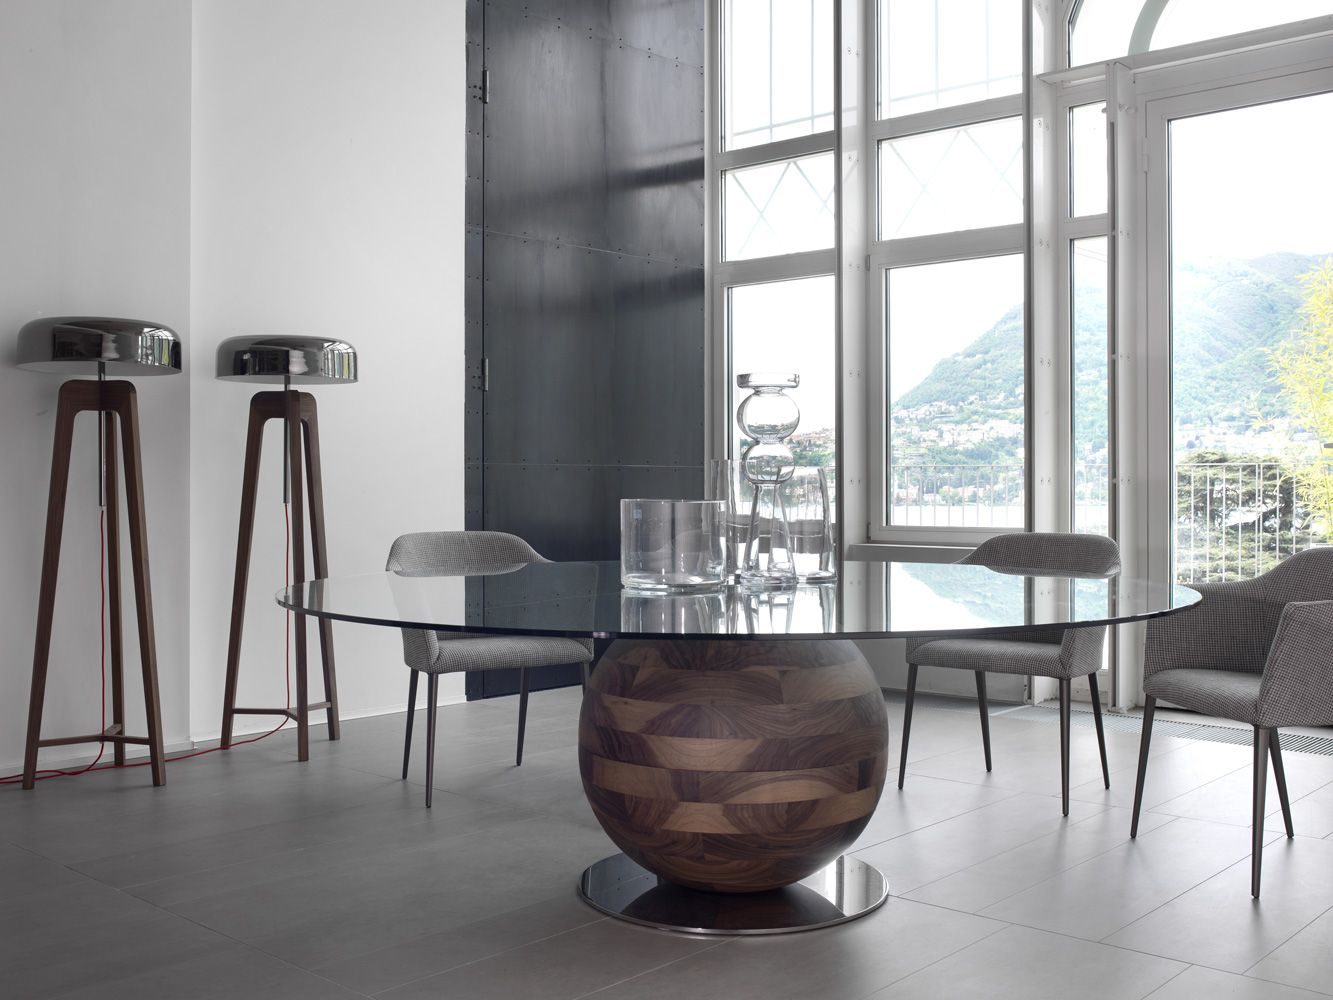 Delightful Dining Table With Base In Solid Walnut And Temepered Glass Top Amazing Contemporary  Dining Tables Steal The Show With A Sculptural Base